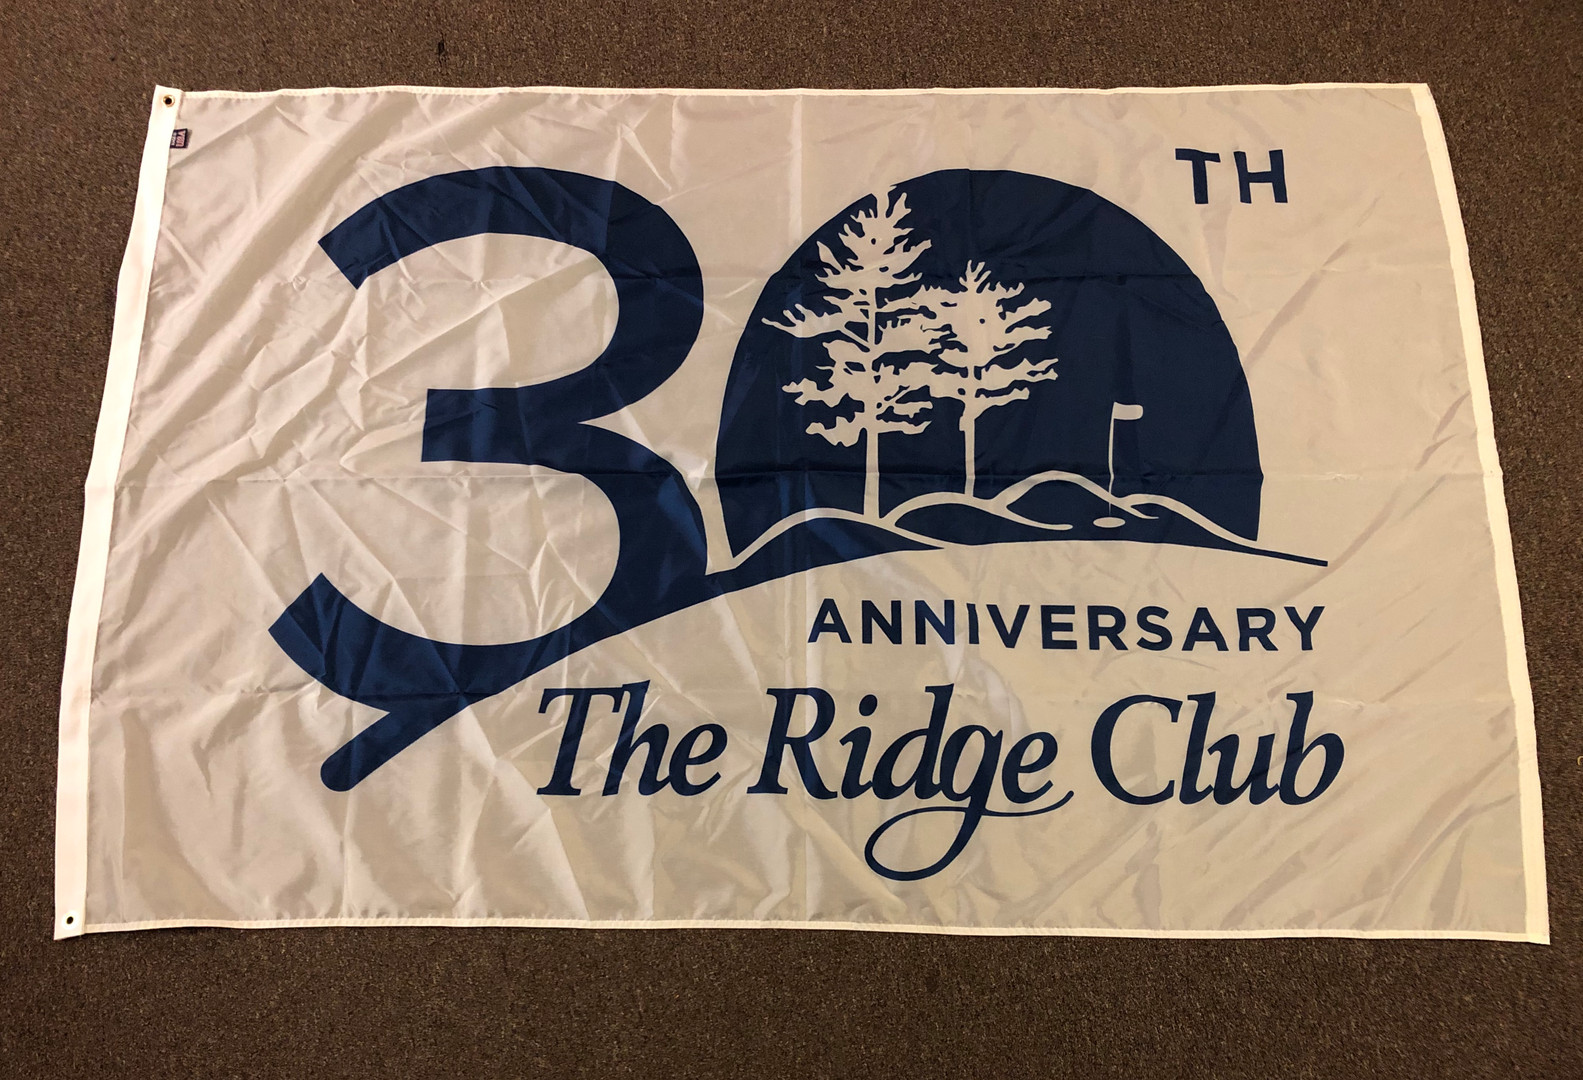 The Ridge Club.jpg